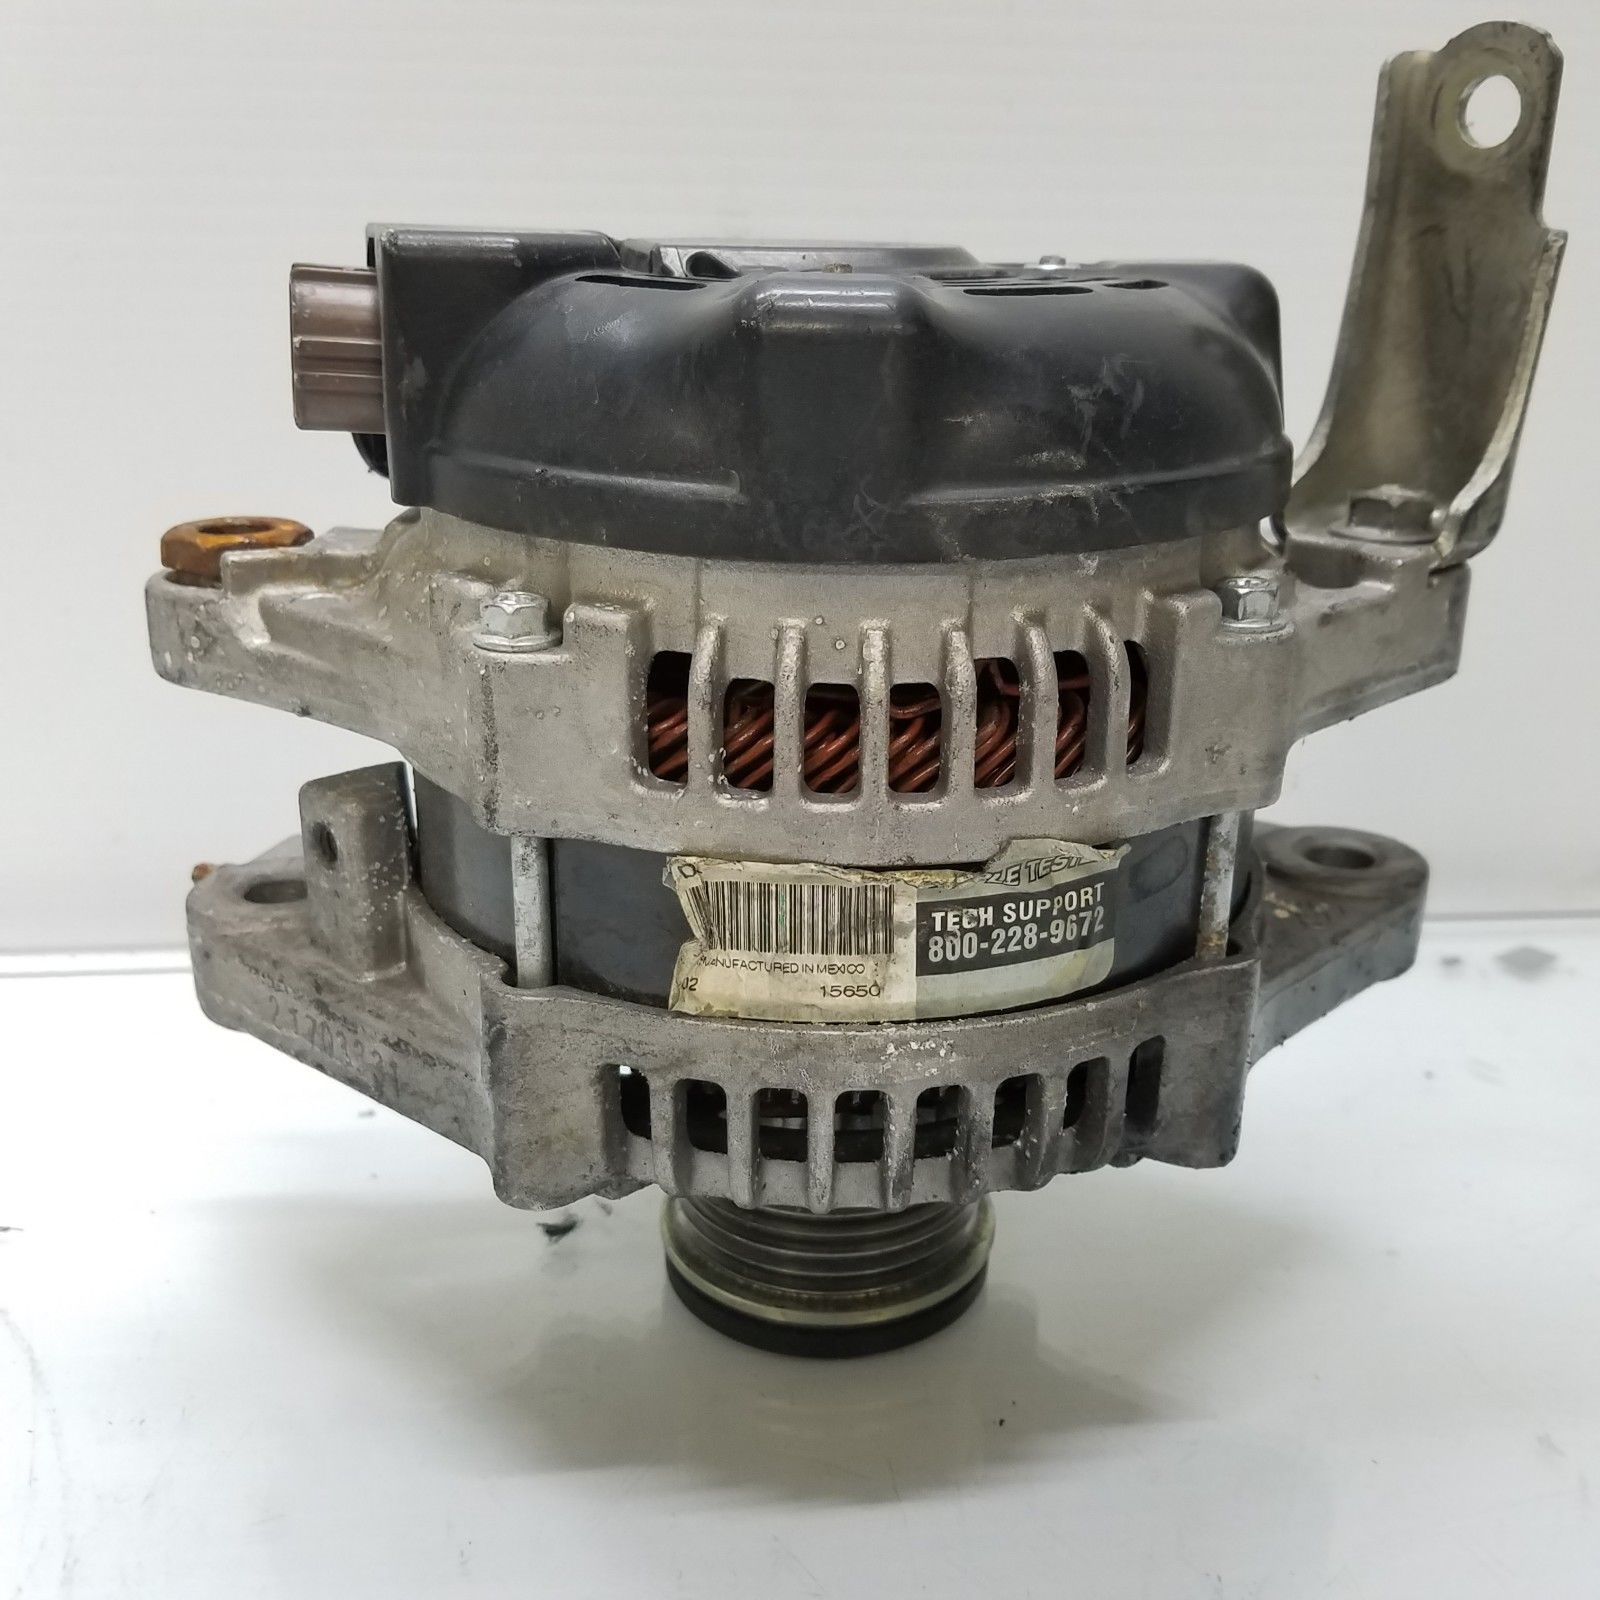 2006-2007-2008 LEXUS IS250 ALTERNATOR GENERATOR OEM 8002289672 8002289672 is6lex